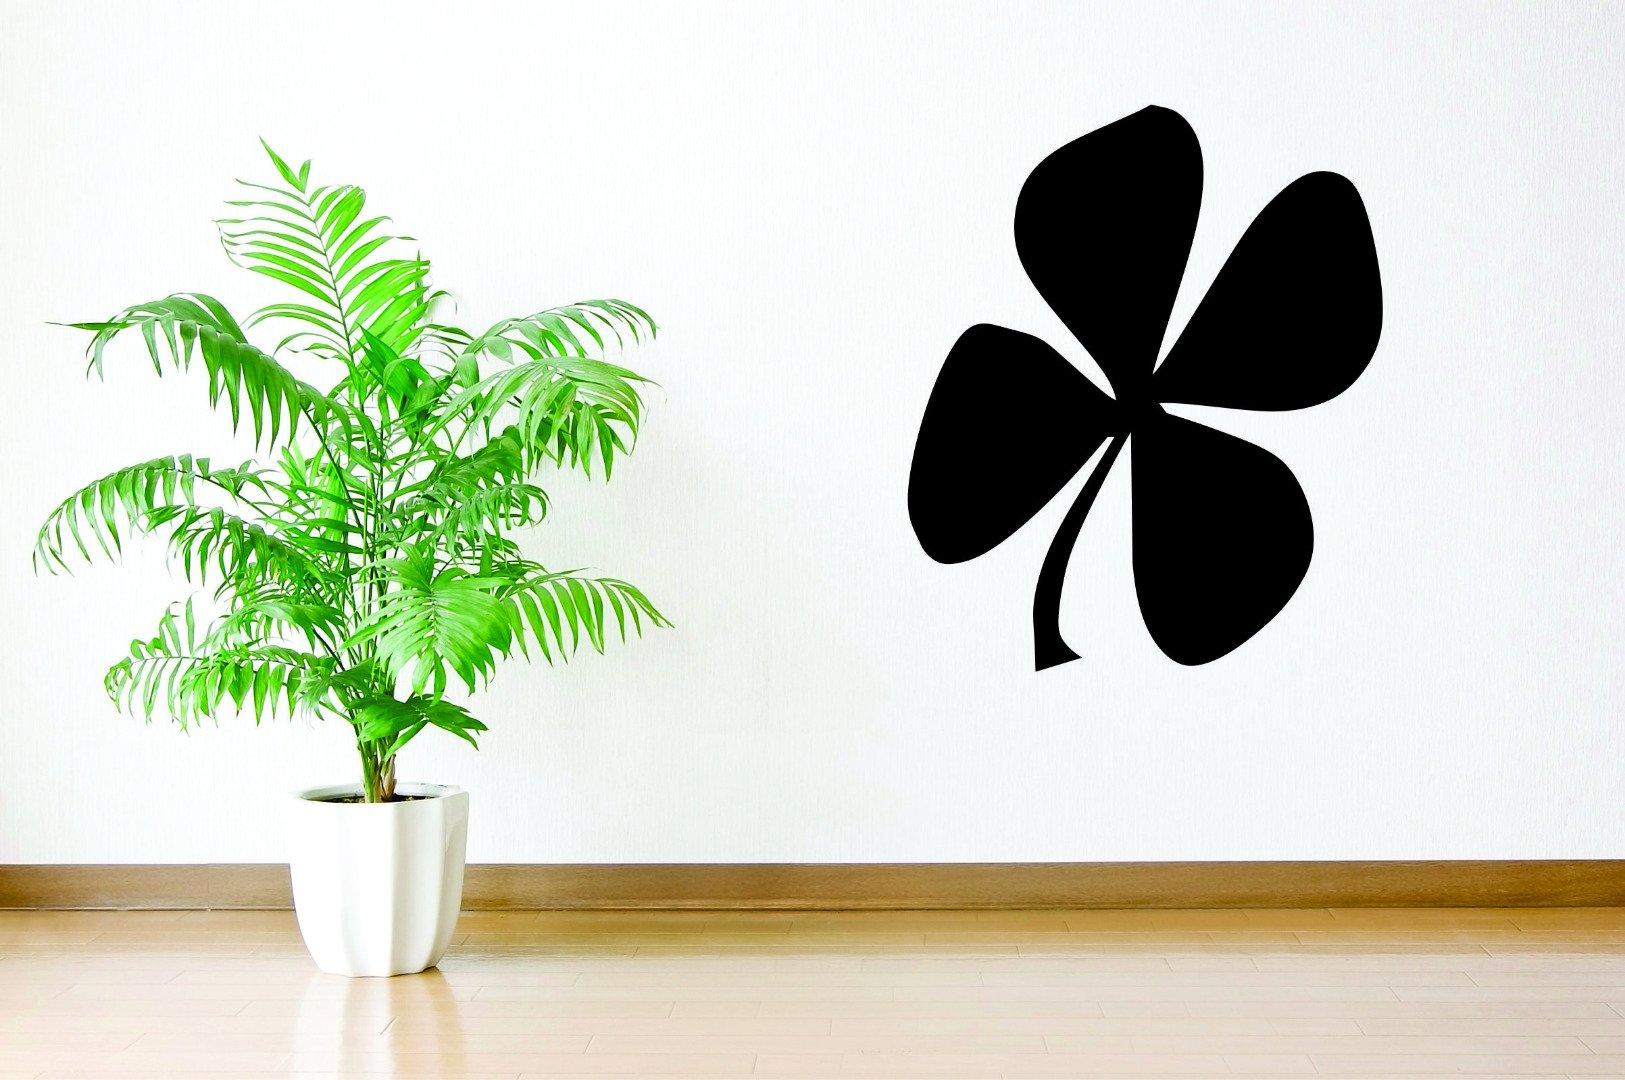 12 x 18 Patricks Day Holiday Irish Wall Decal Design with Vinyl RAD 1063 1 Polka-Dots Clover Lucky Shamrock St Black